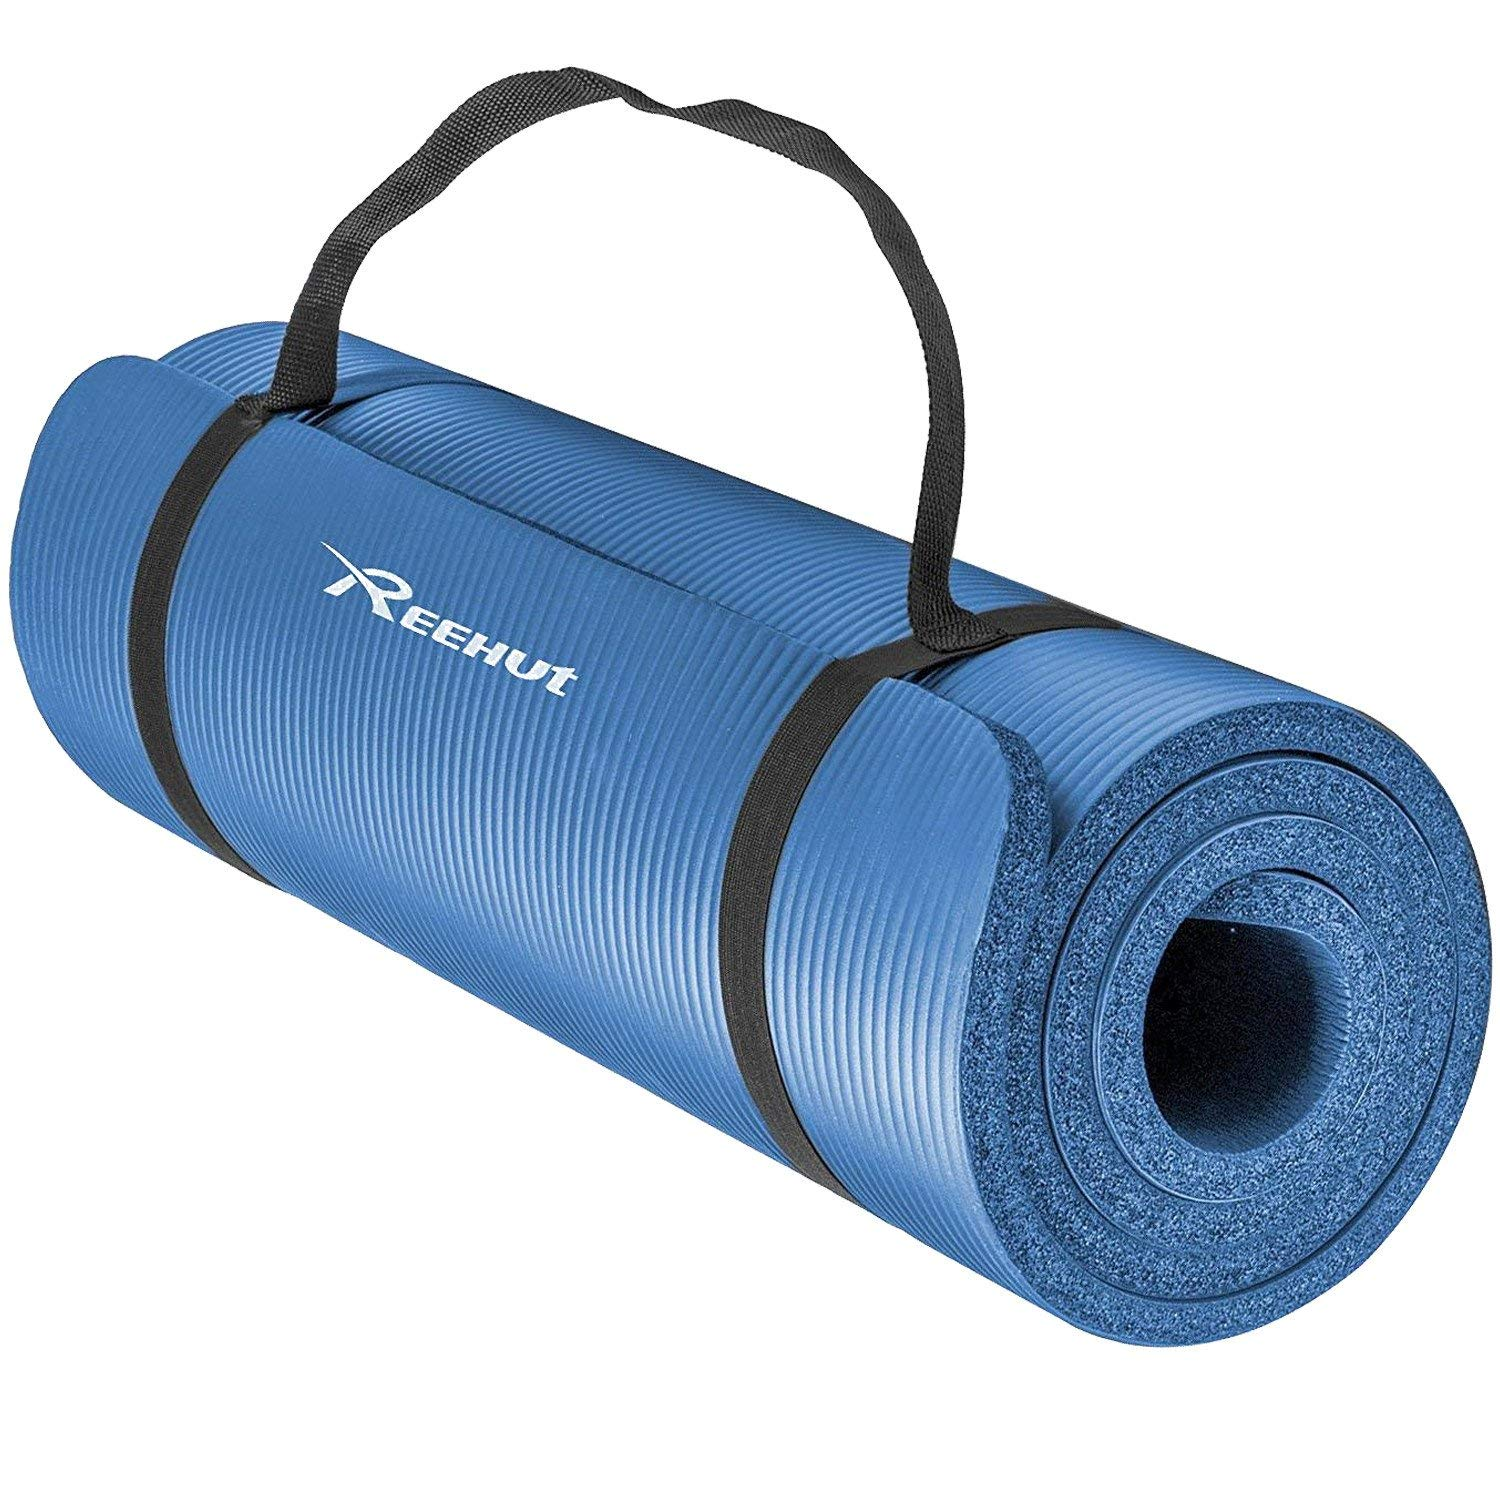 Reehut 1/2-Inch Extra Thick High Density NBR Exercise Yoga Mat for Pilates, Fitness & Workout w/ Carrying Strap - Blue